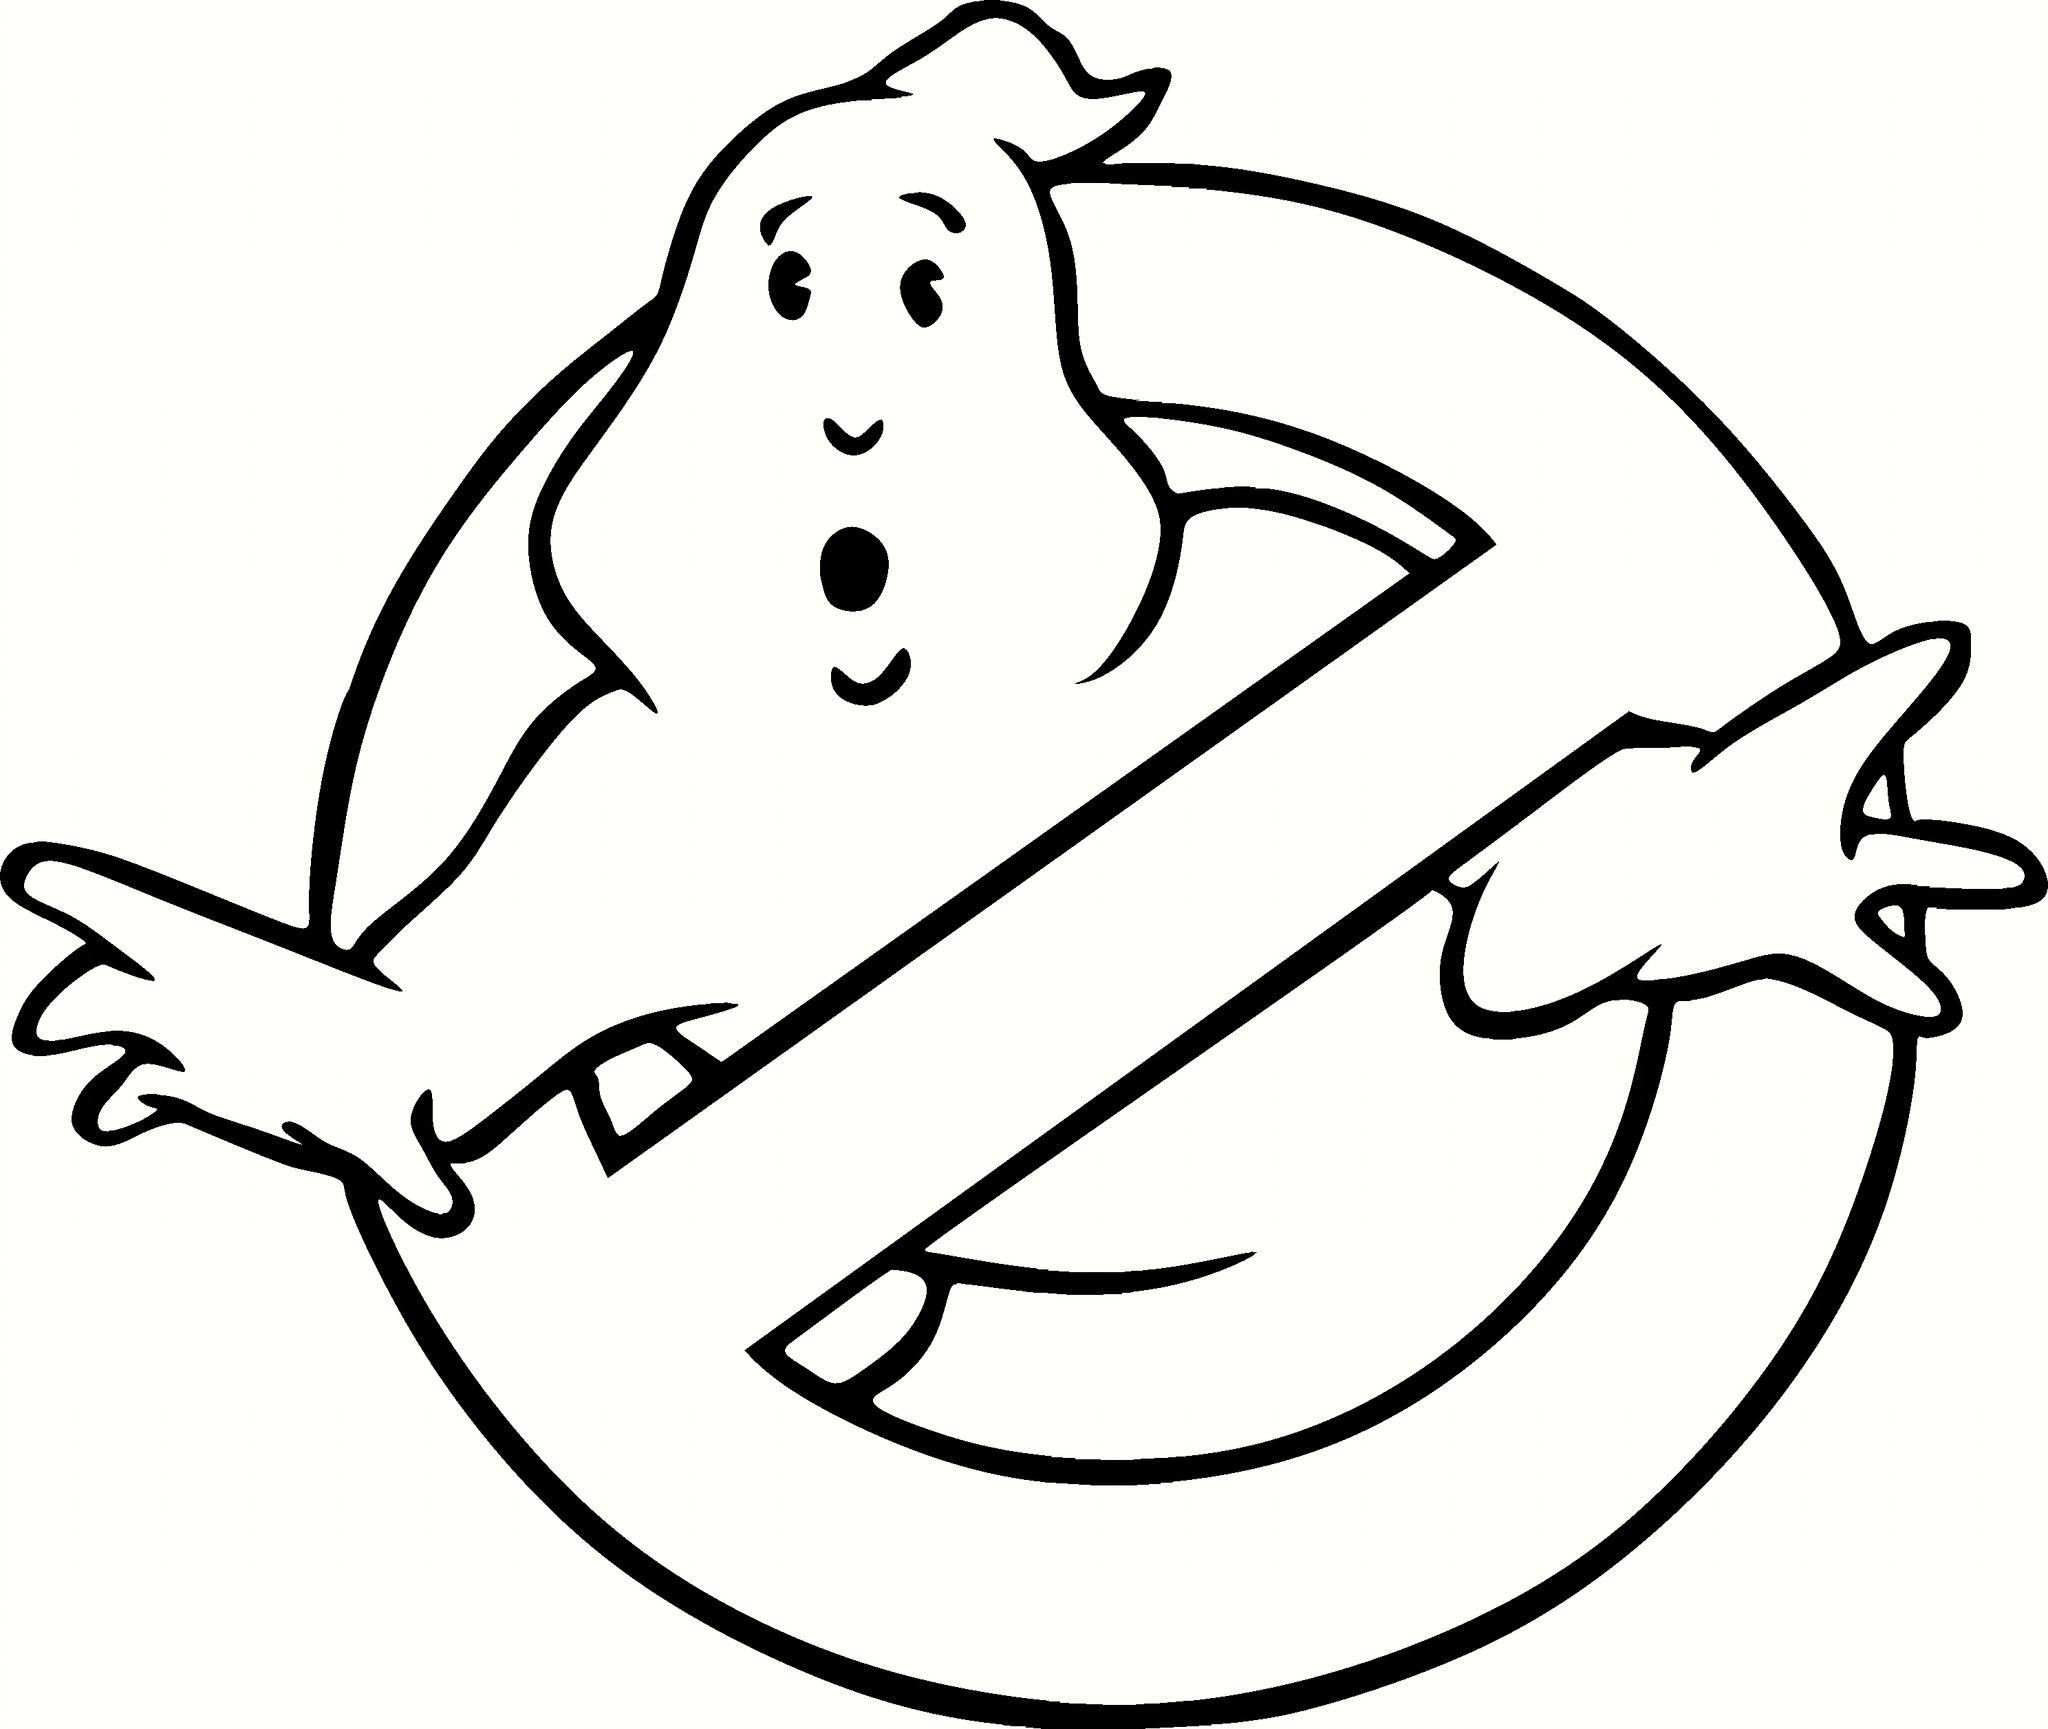 Ghost Busters Logo Vinyl Decal Graphic - Choose your Color and Size ...